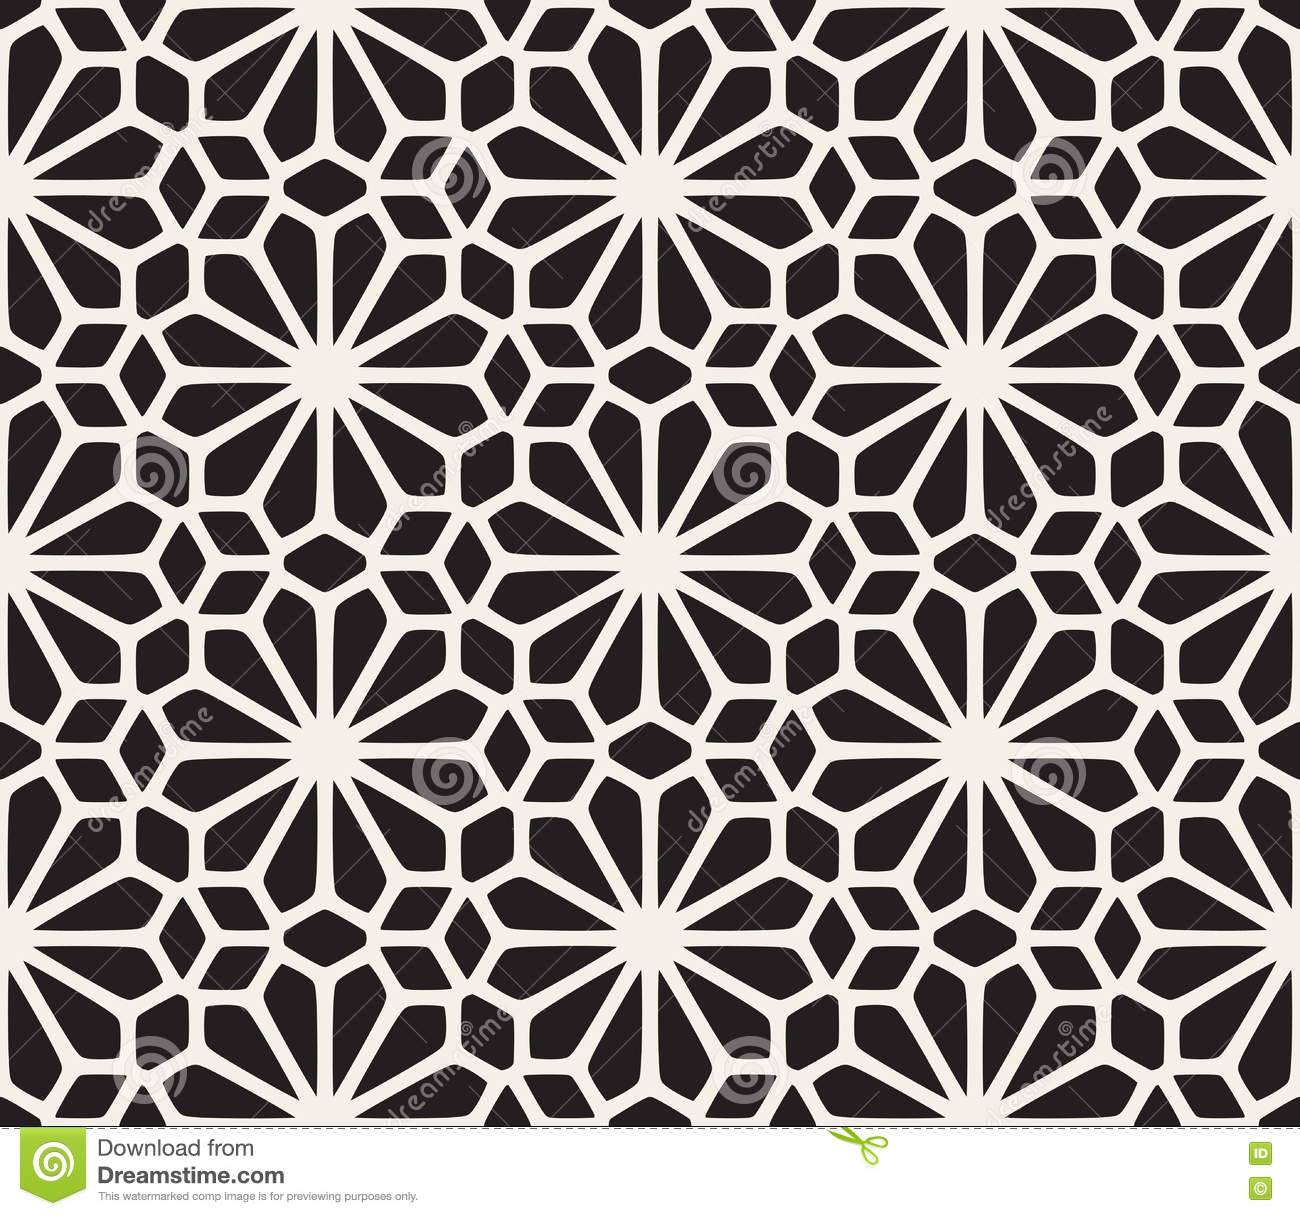 Download Vector Seamless Black And White Lace Floral Pattern Stock